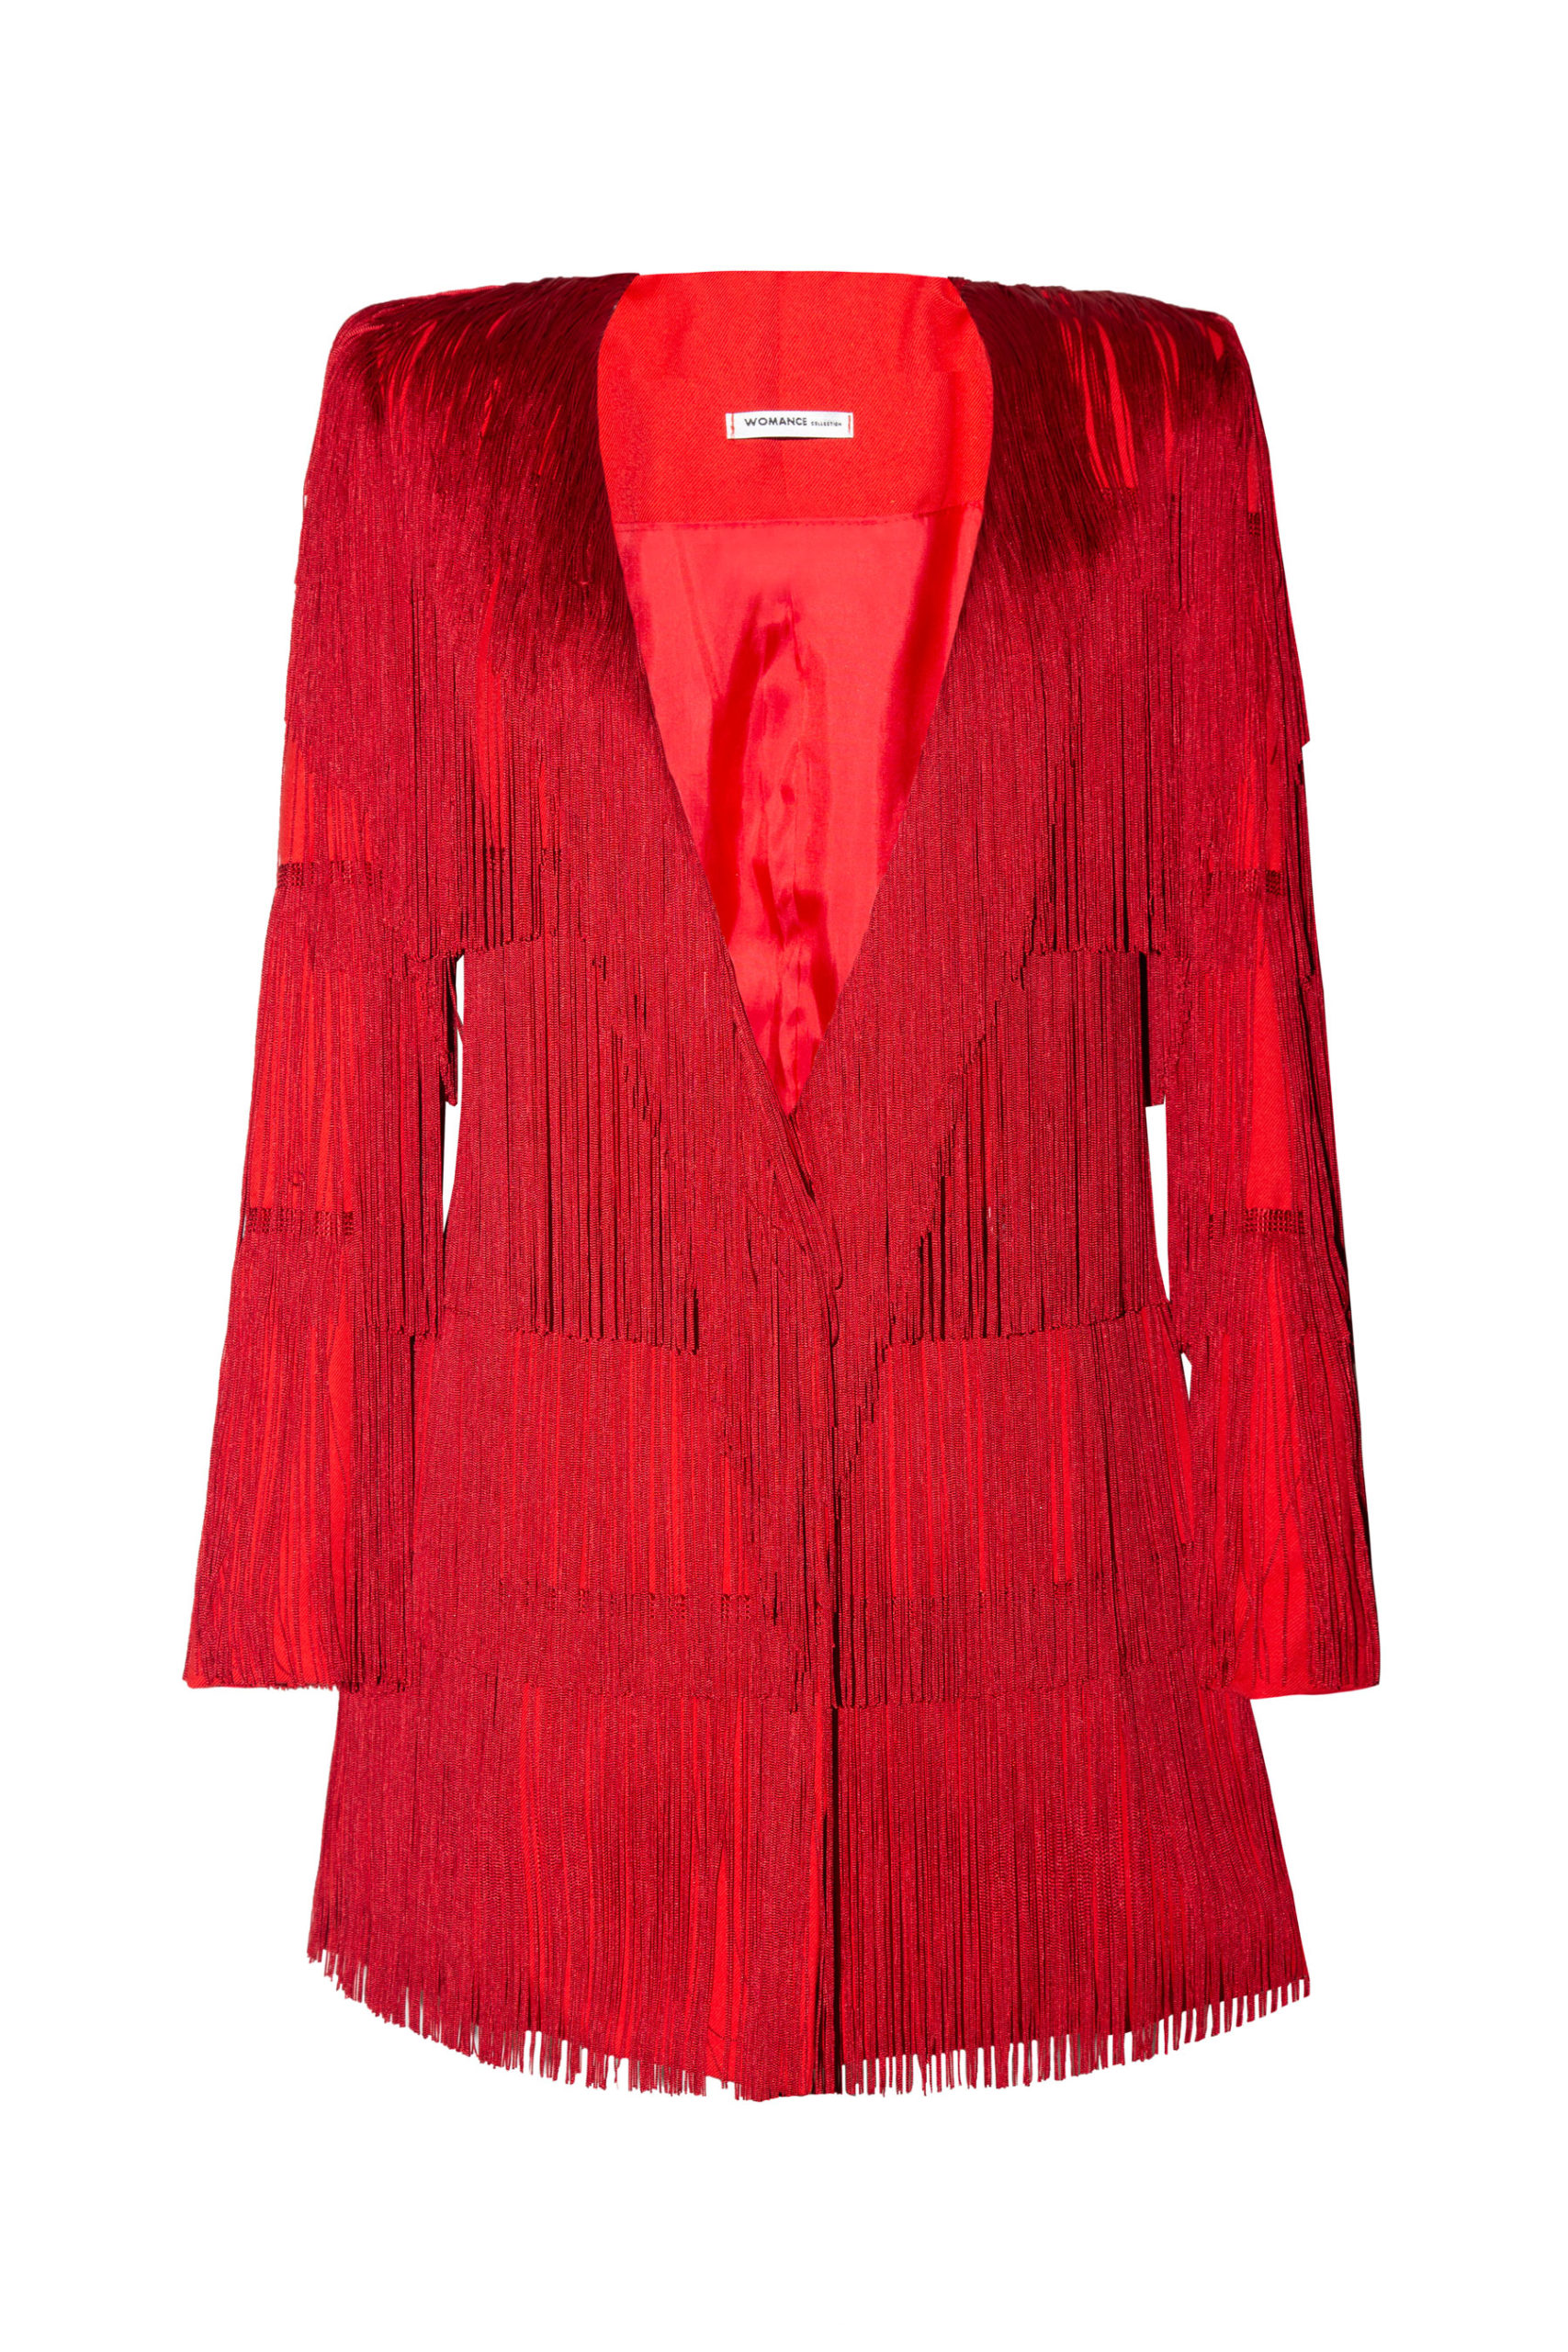 Smoking mujer rojo con flecos The Smoking red fringe